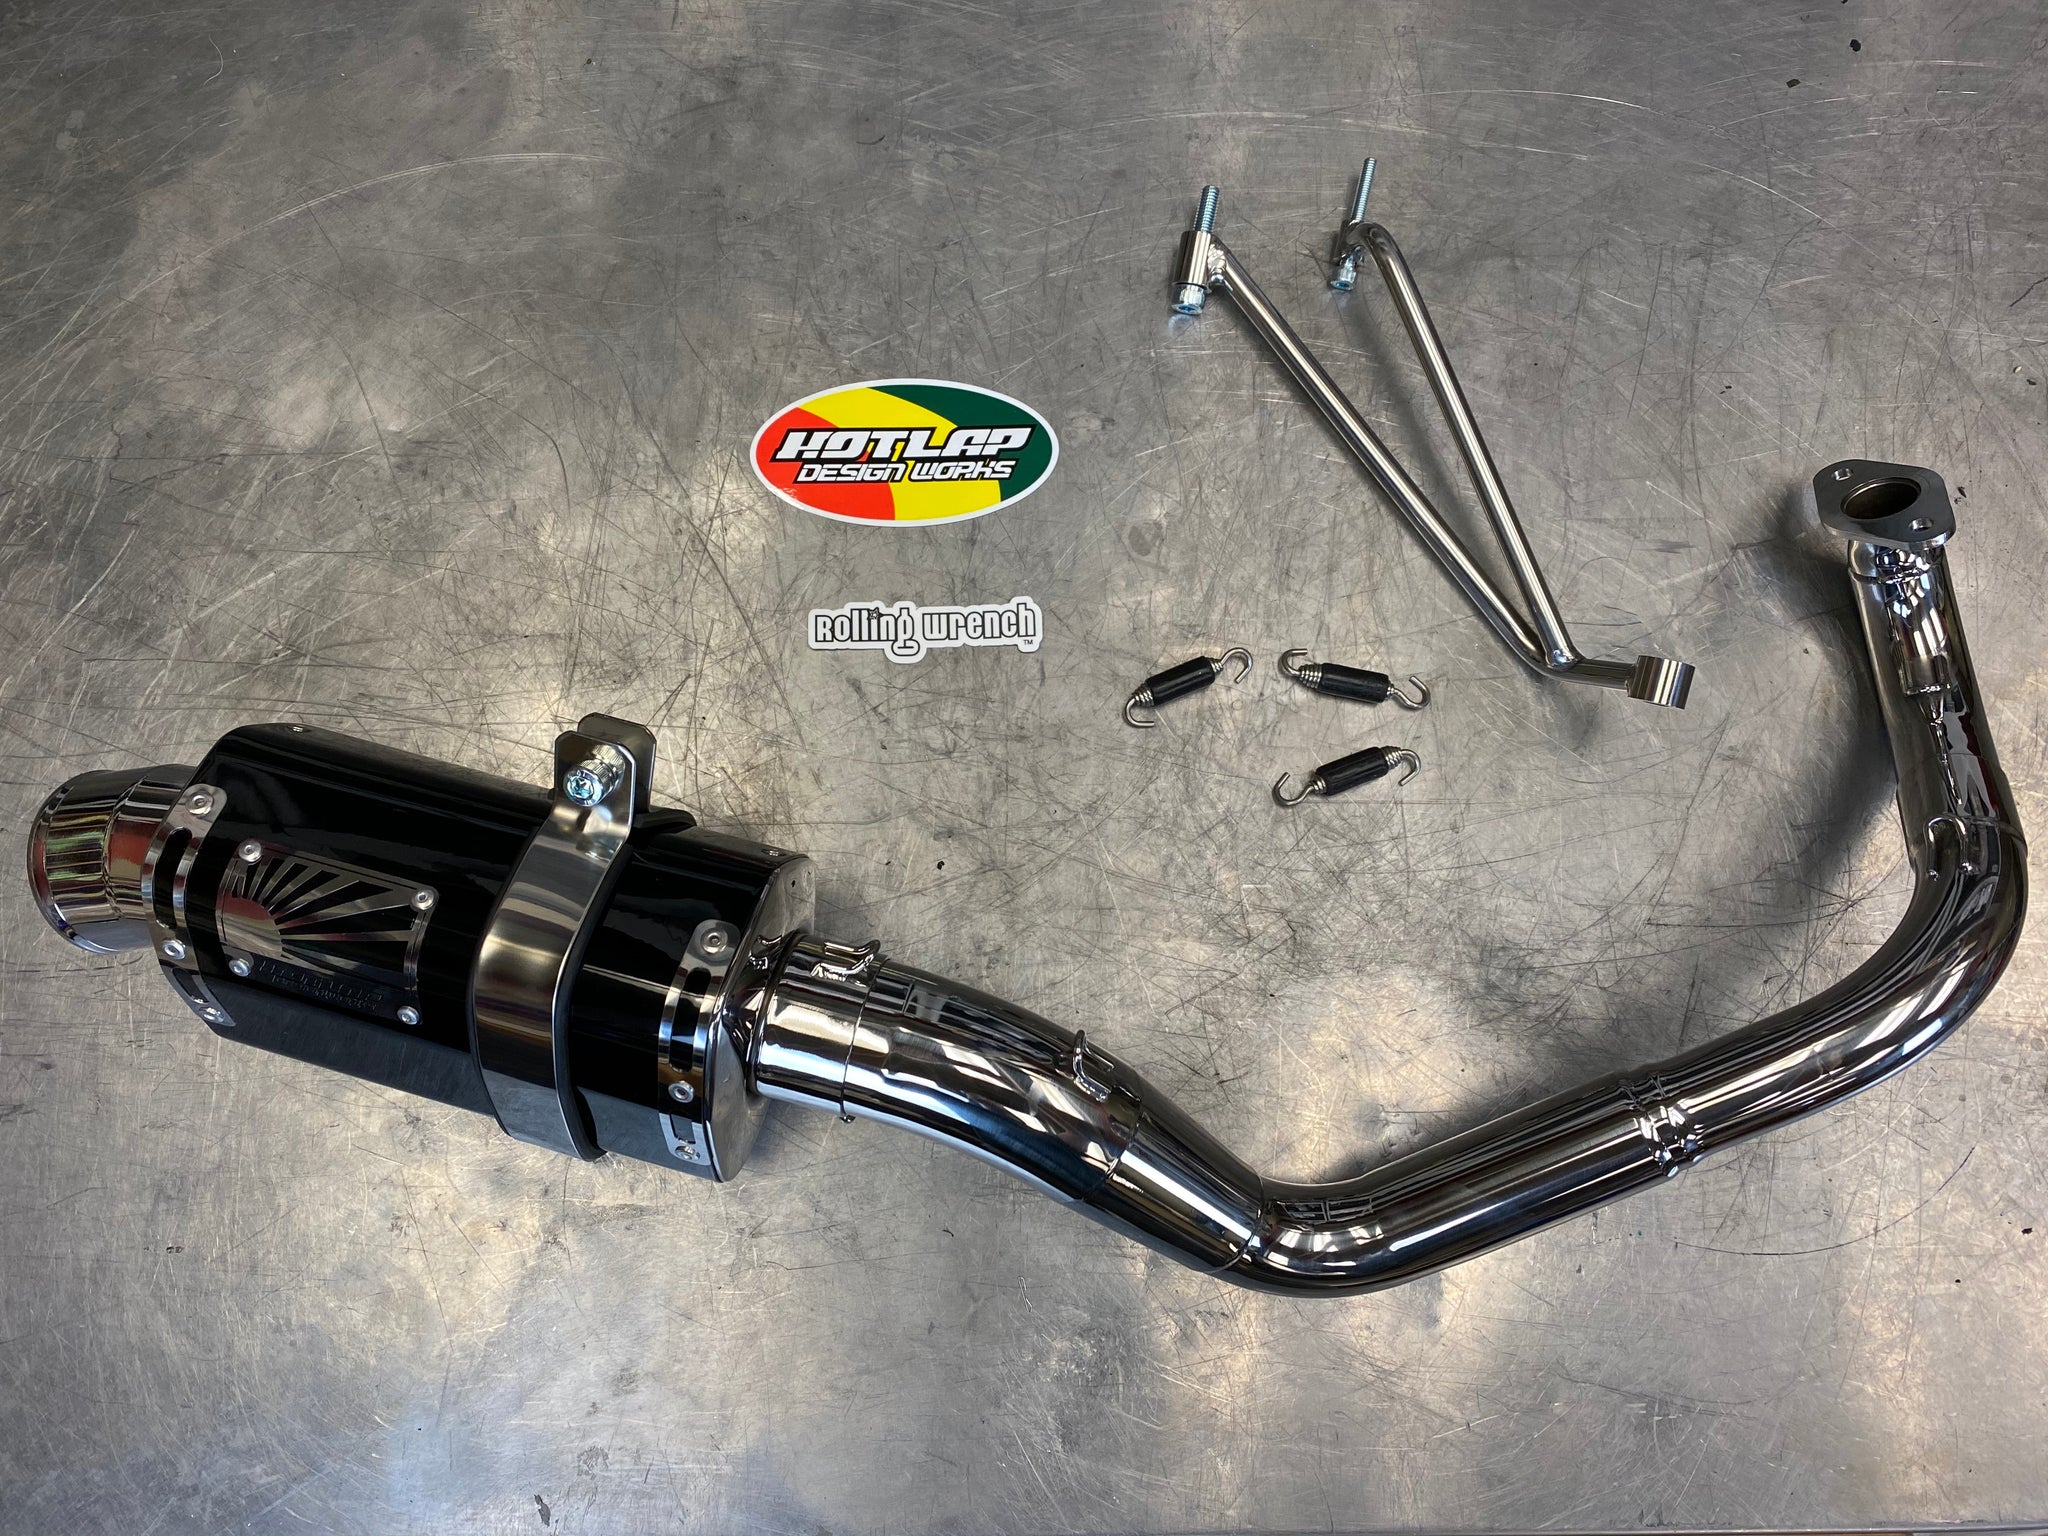 Honda Ruckus GY6 Performance fatty exhaust - HOTLAP MAMUSHI TYPE 2